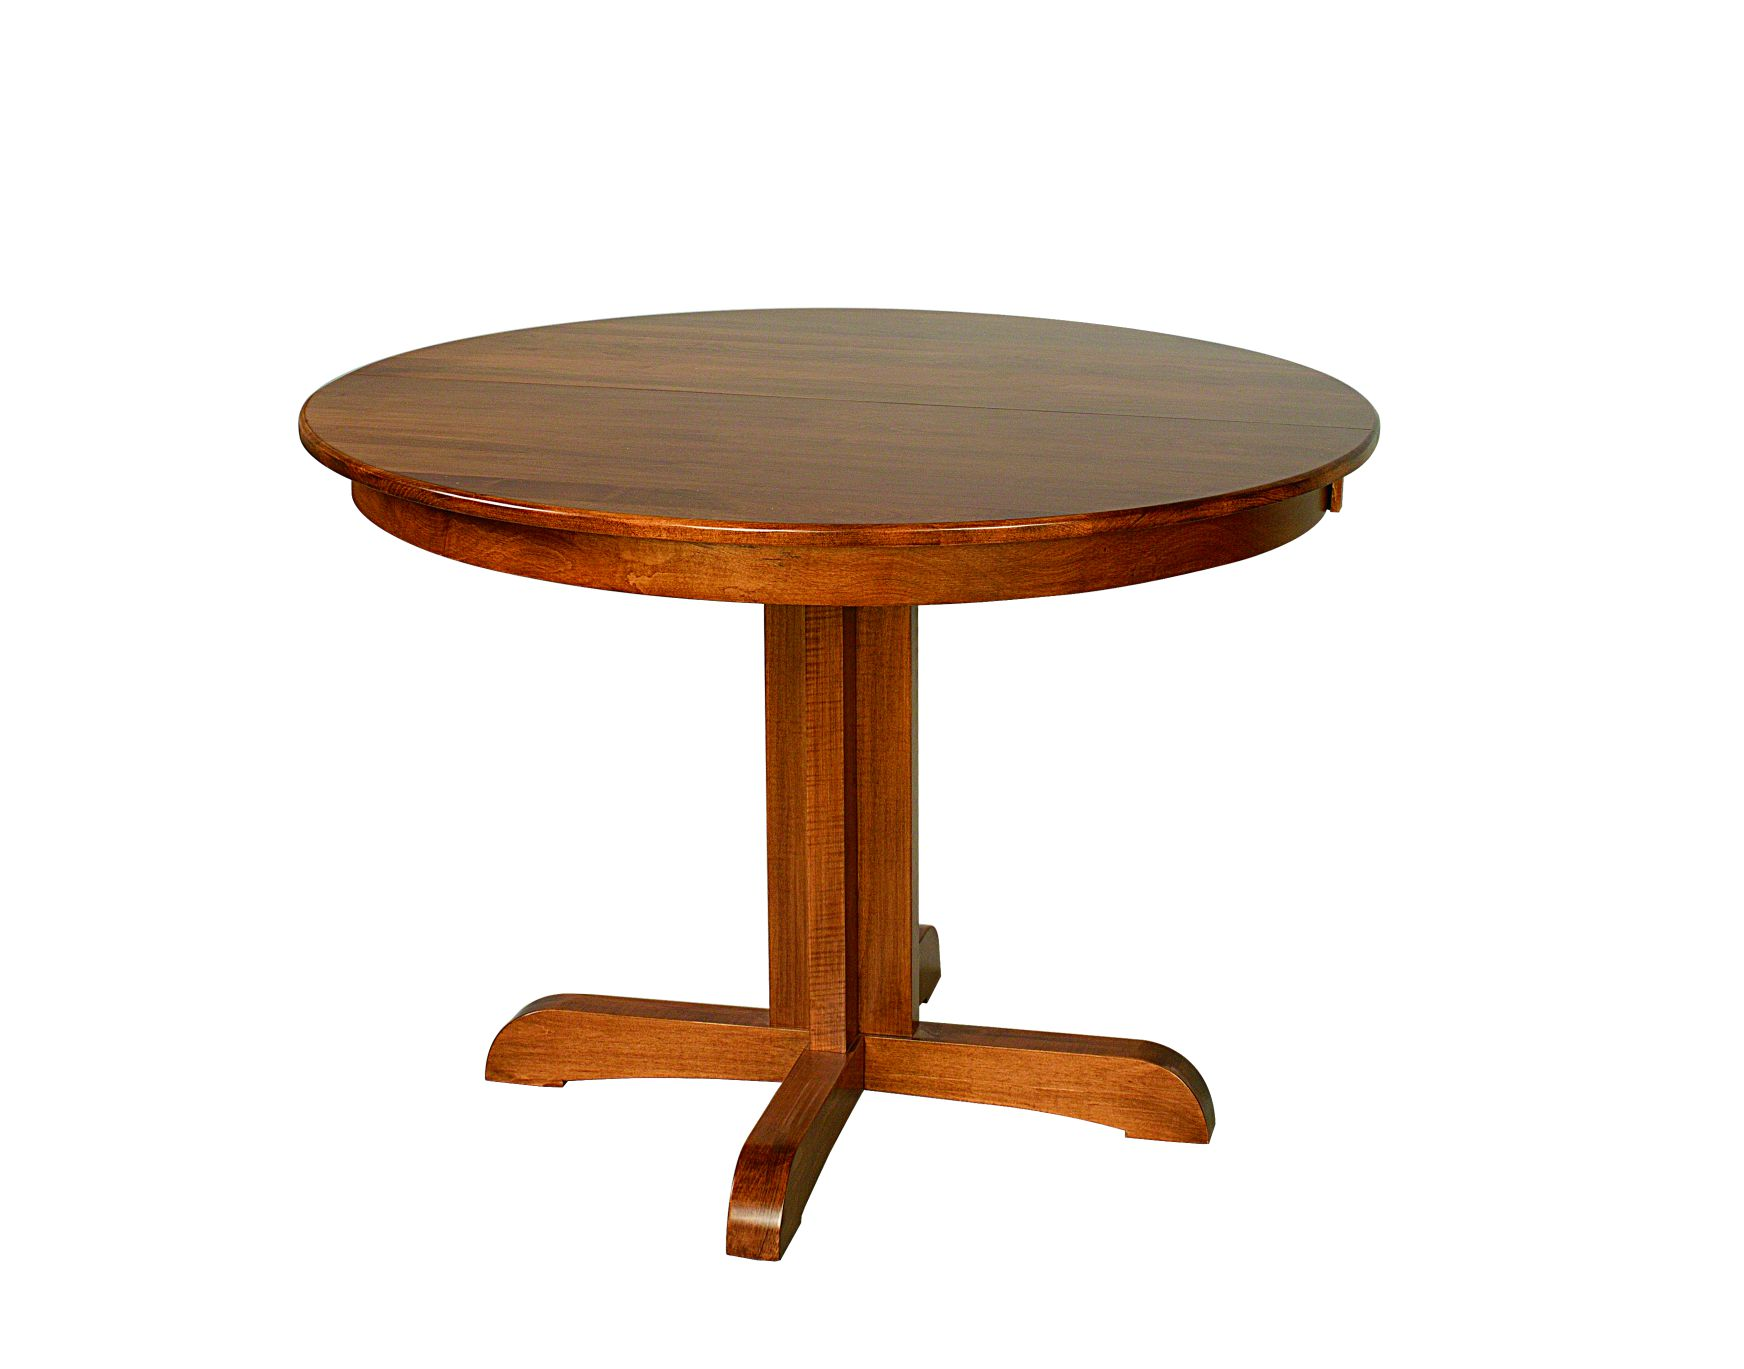 Dining room tables austin tx austin pedestal table amish furniture store mankato mn - Dining room sets austin tx ...